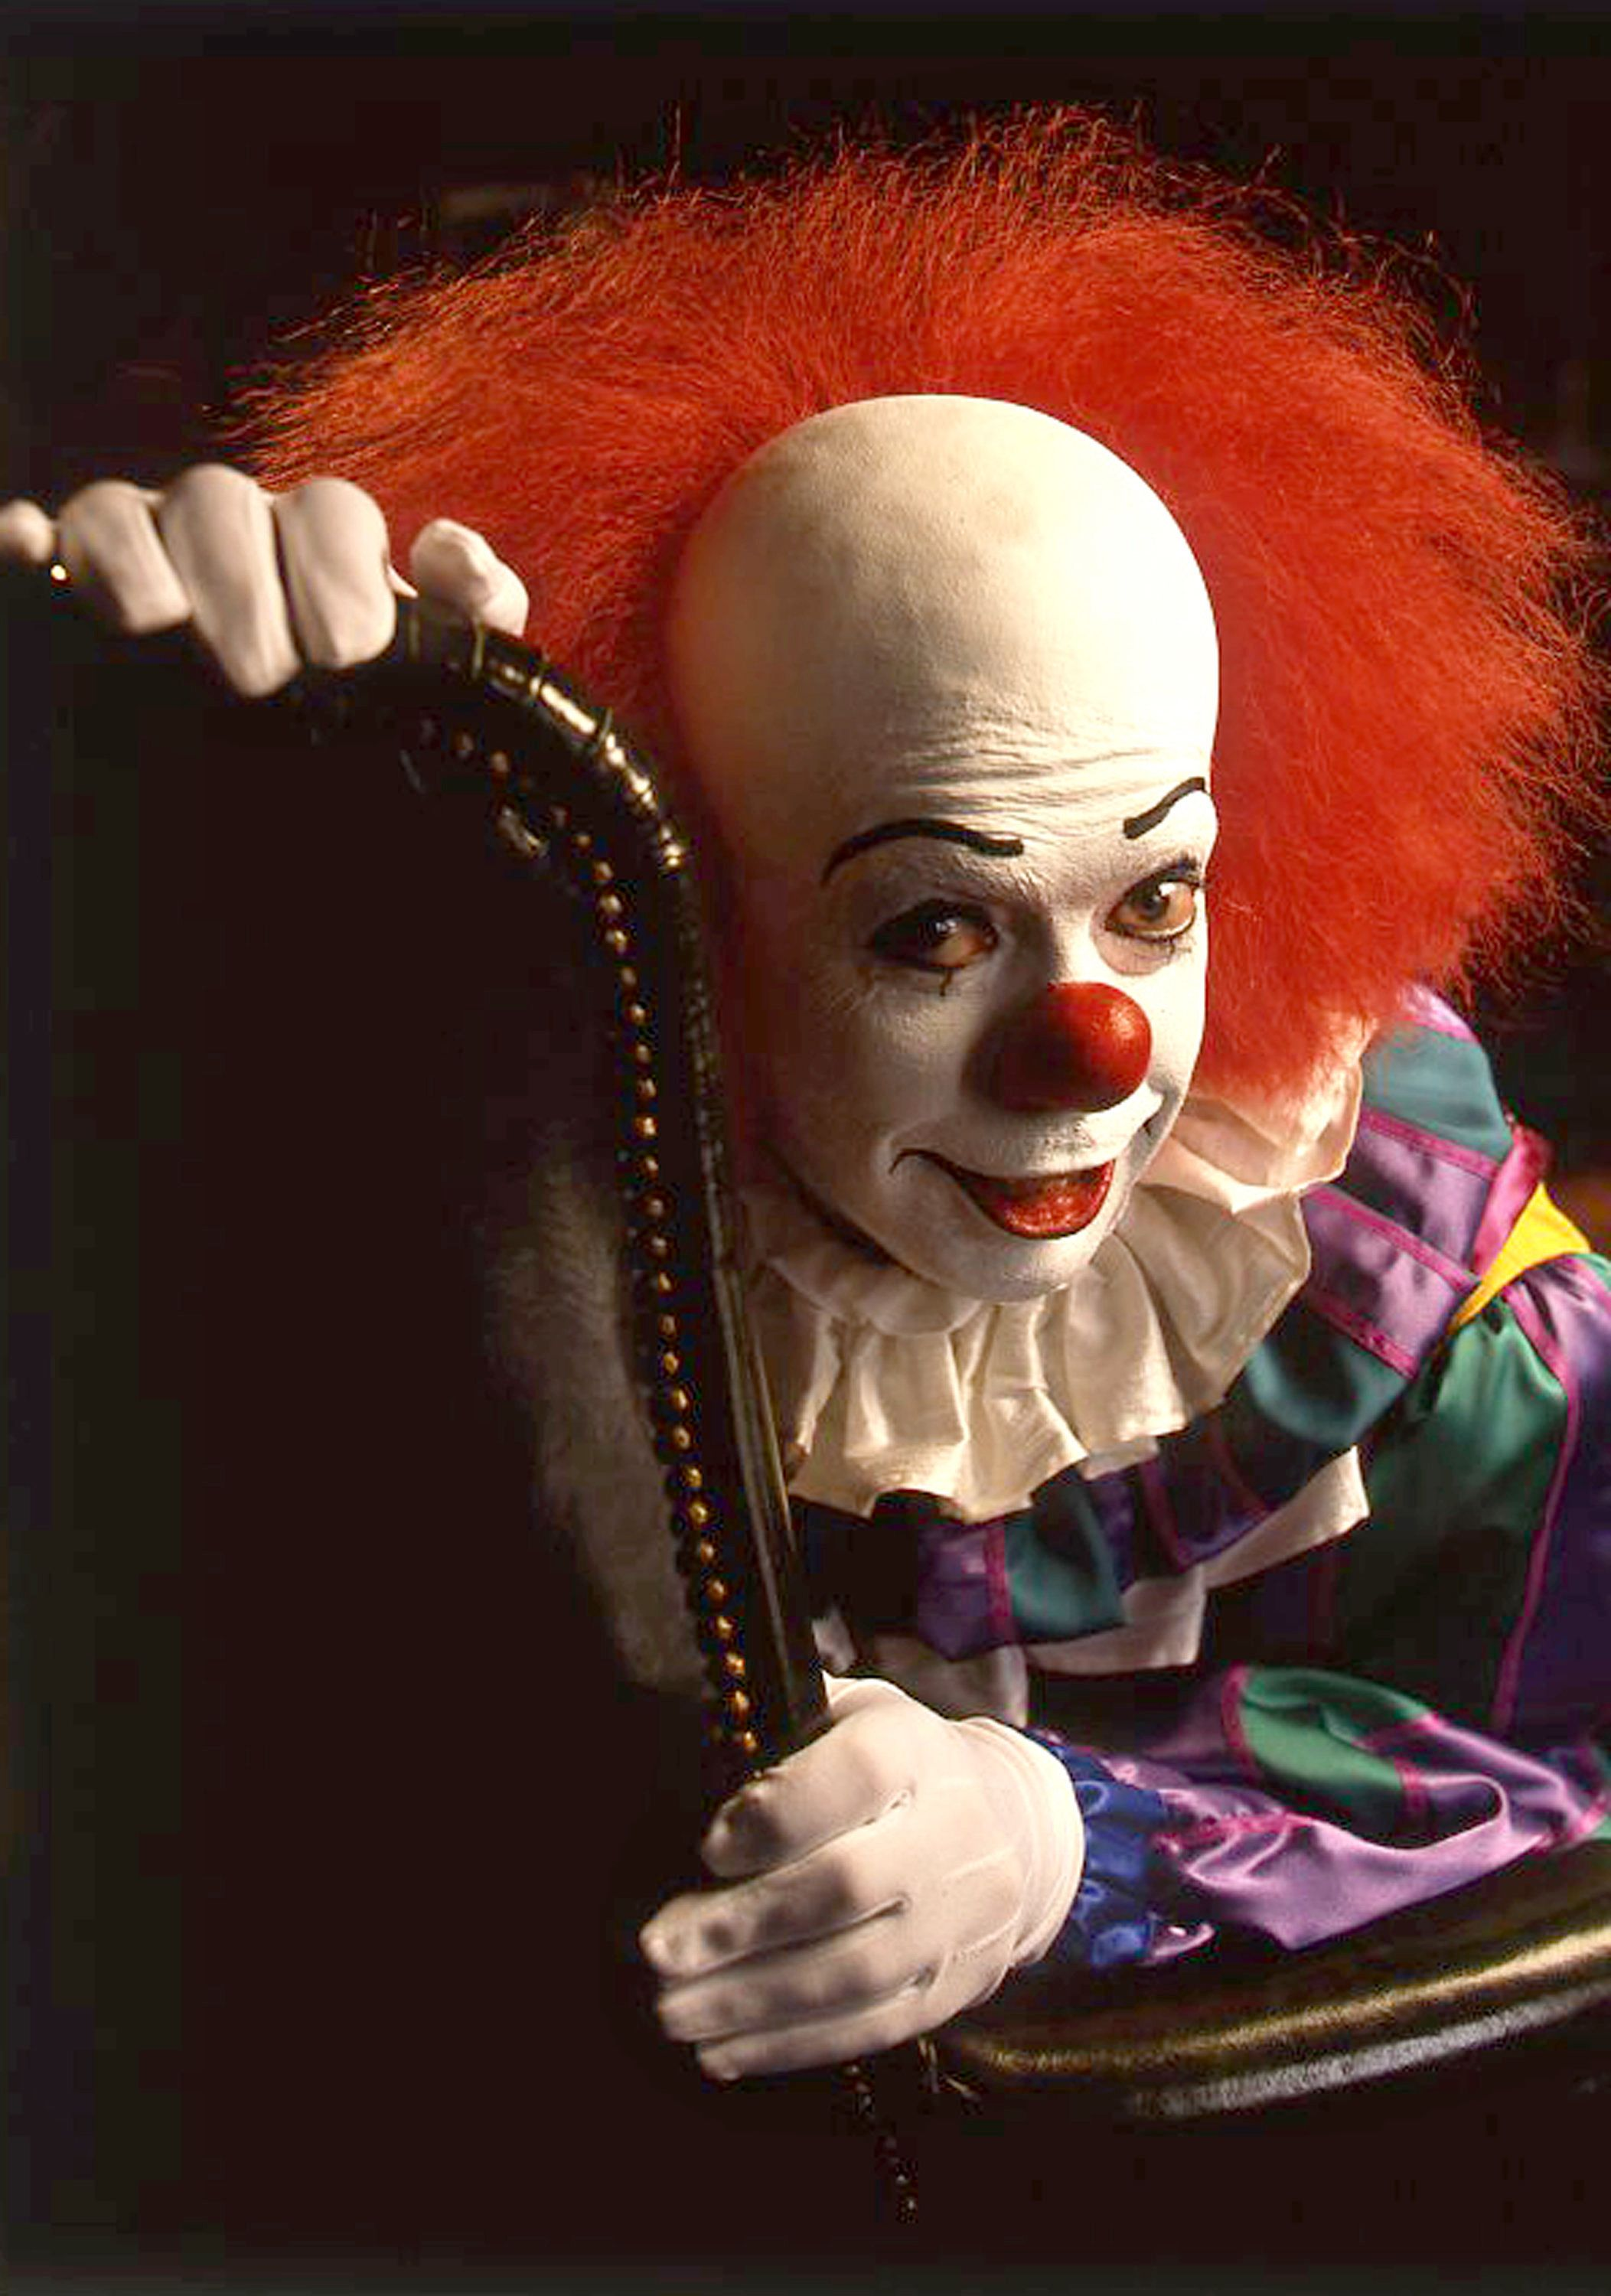 Stephen King's 'IT' - 11/18 and 11/20/90 In this ABC Novel for Television based on the best-selling Stephen King novel,  played Ben 'Haystack' Hanscom, one of seven childhood friends who are reunited in their middle ages to confront an evil entity (a clown named Pennywise).  (Photo by Bob D'Amico/ABC via Getty Images) TIM CURRY